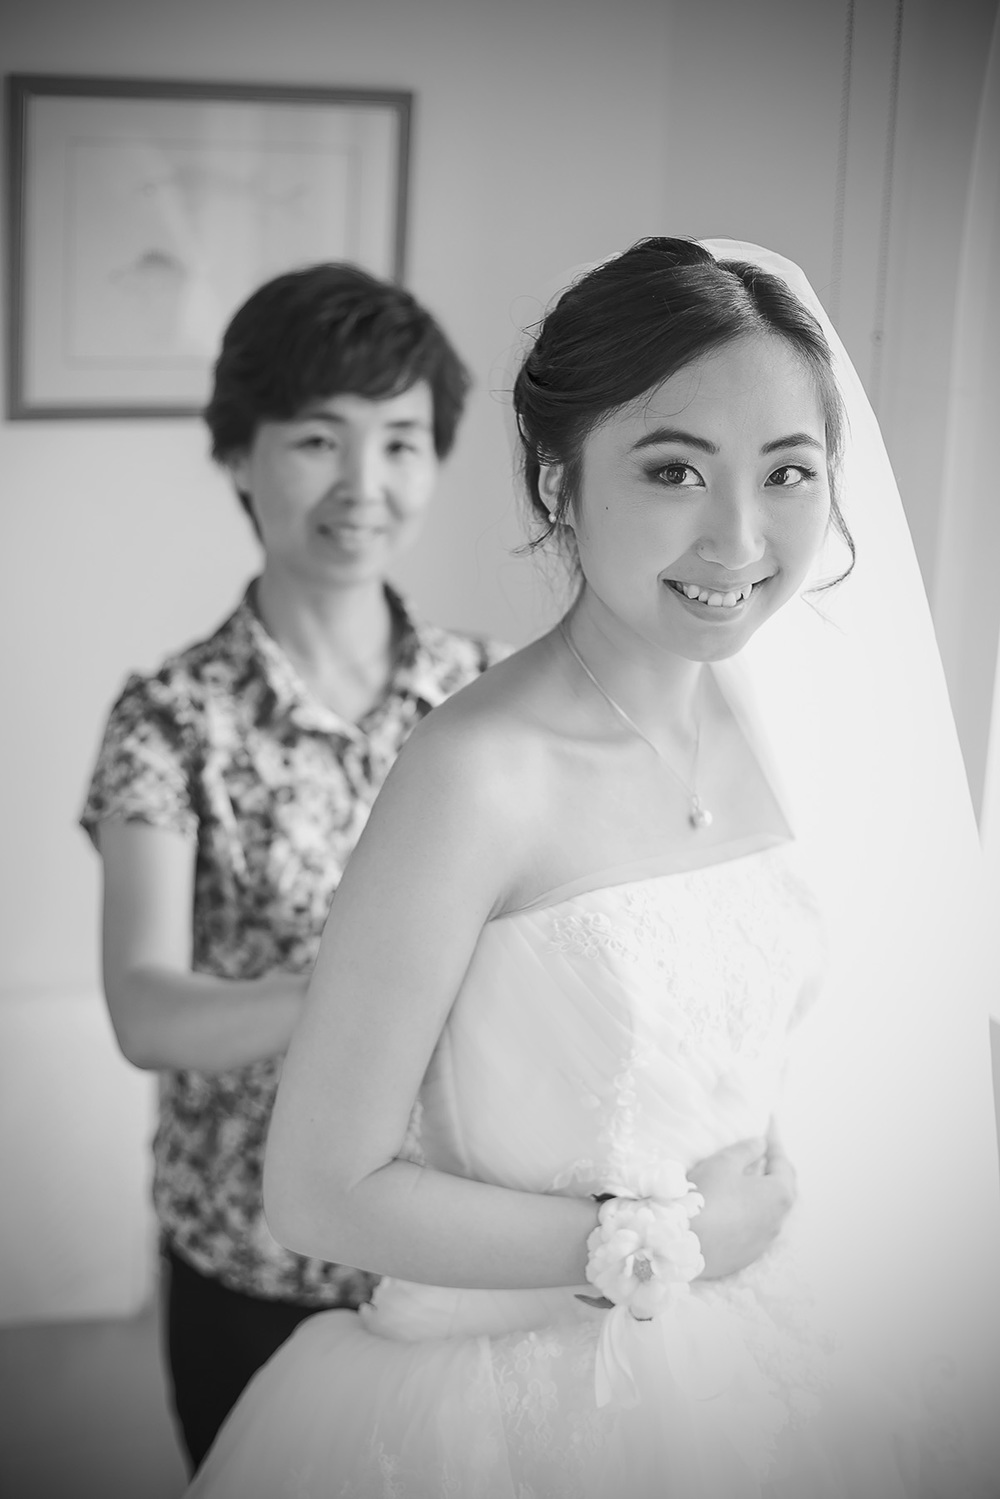 Black and White Film Style Bridal Preparation photo 5